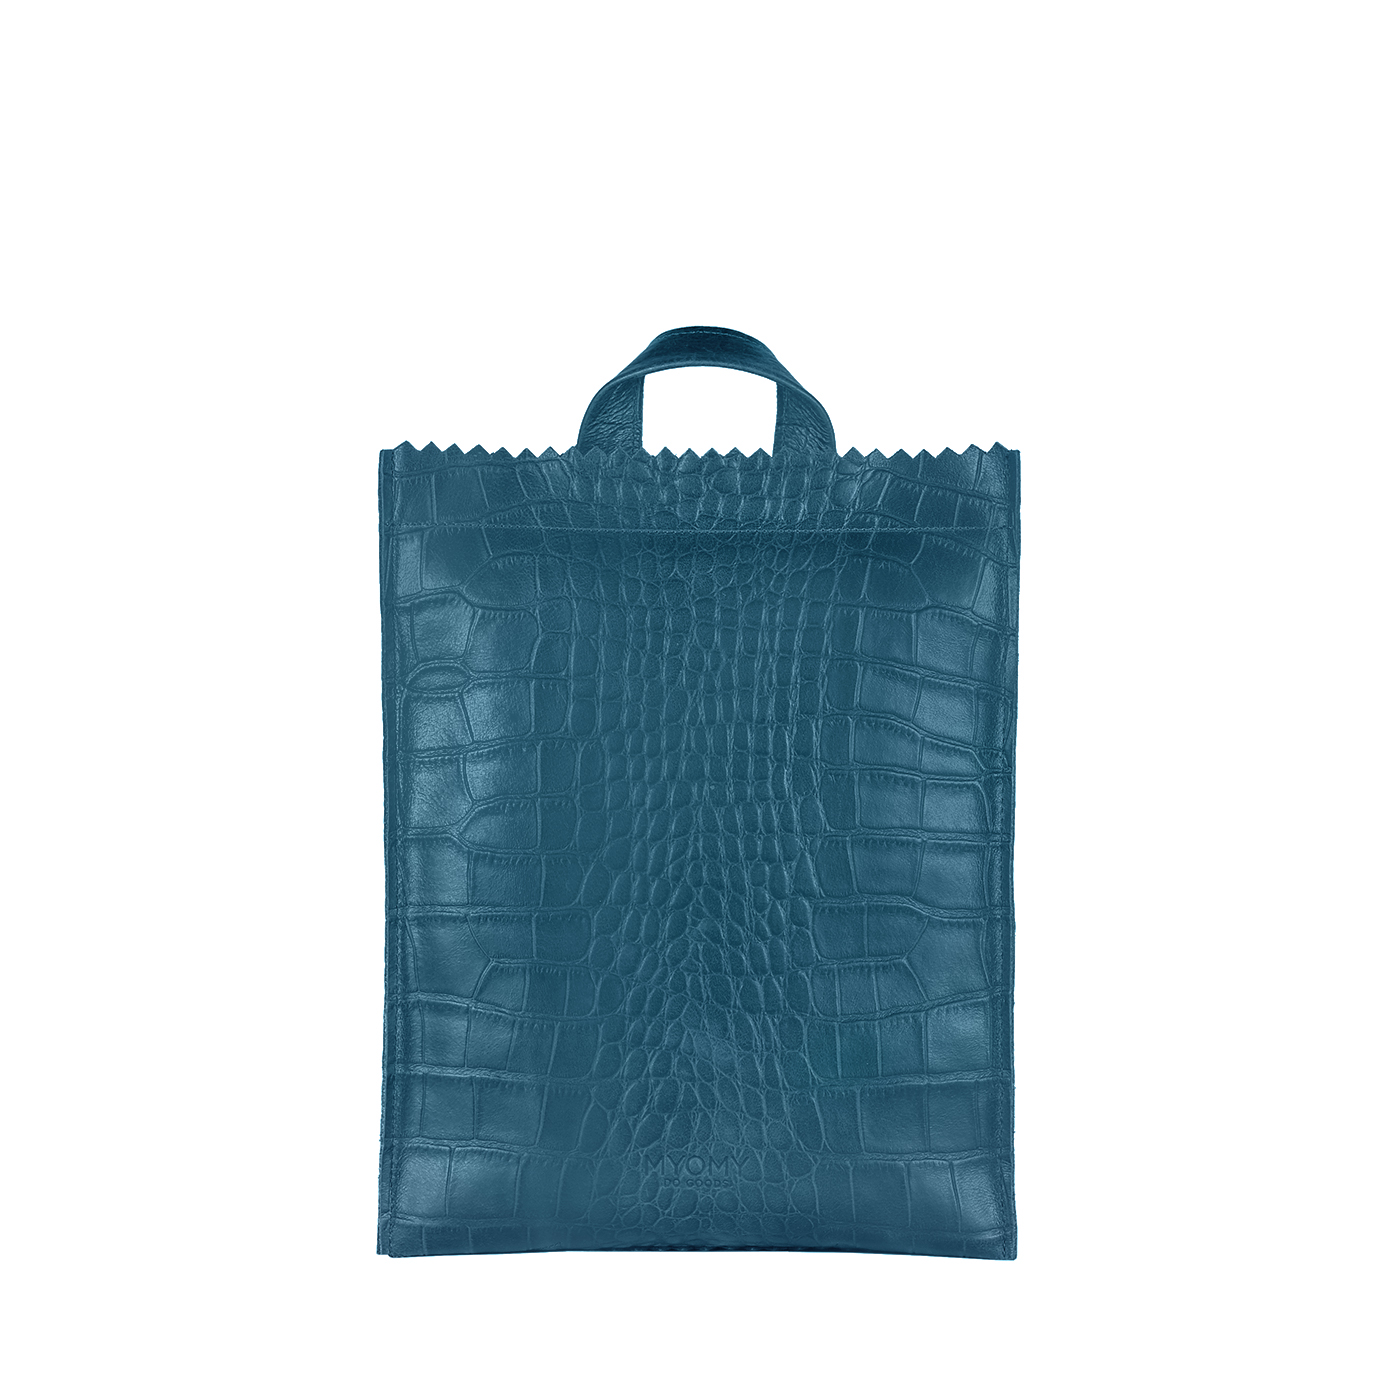 MY PAPER BAG Backbag medium - croco denim blue